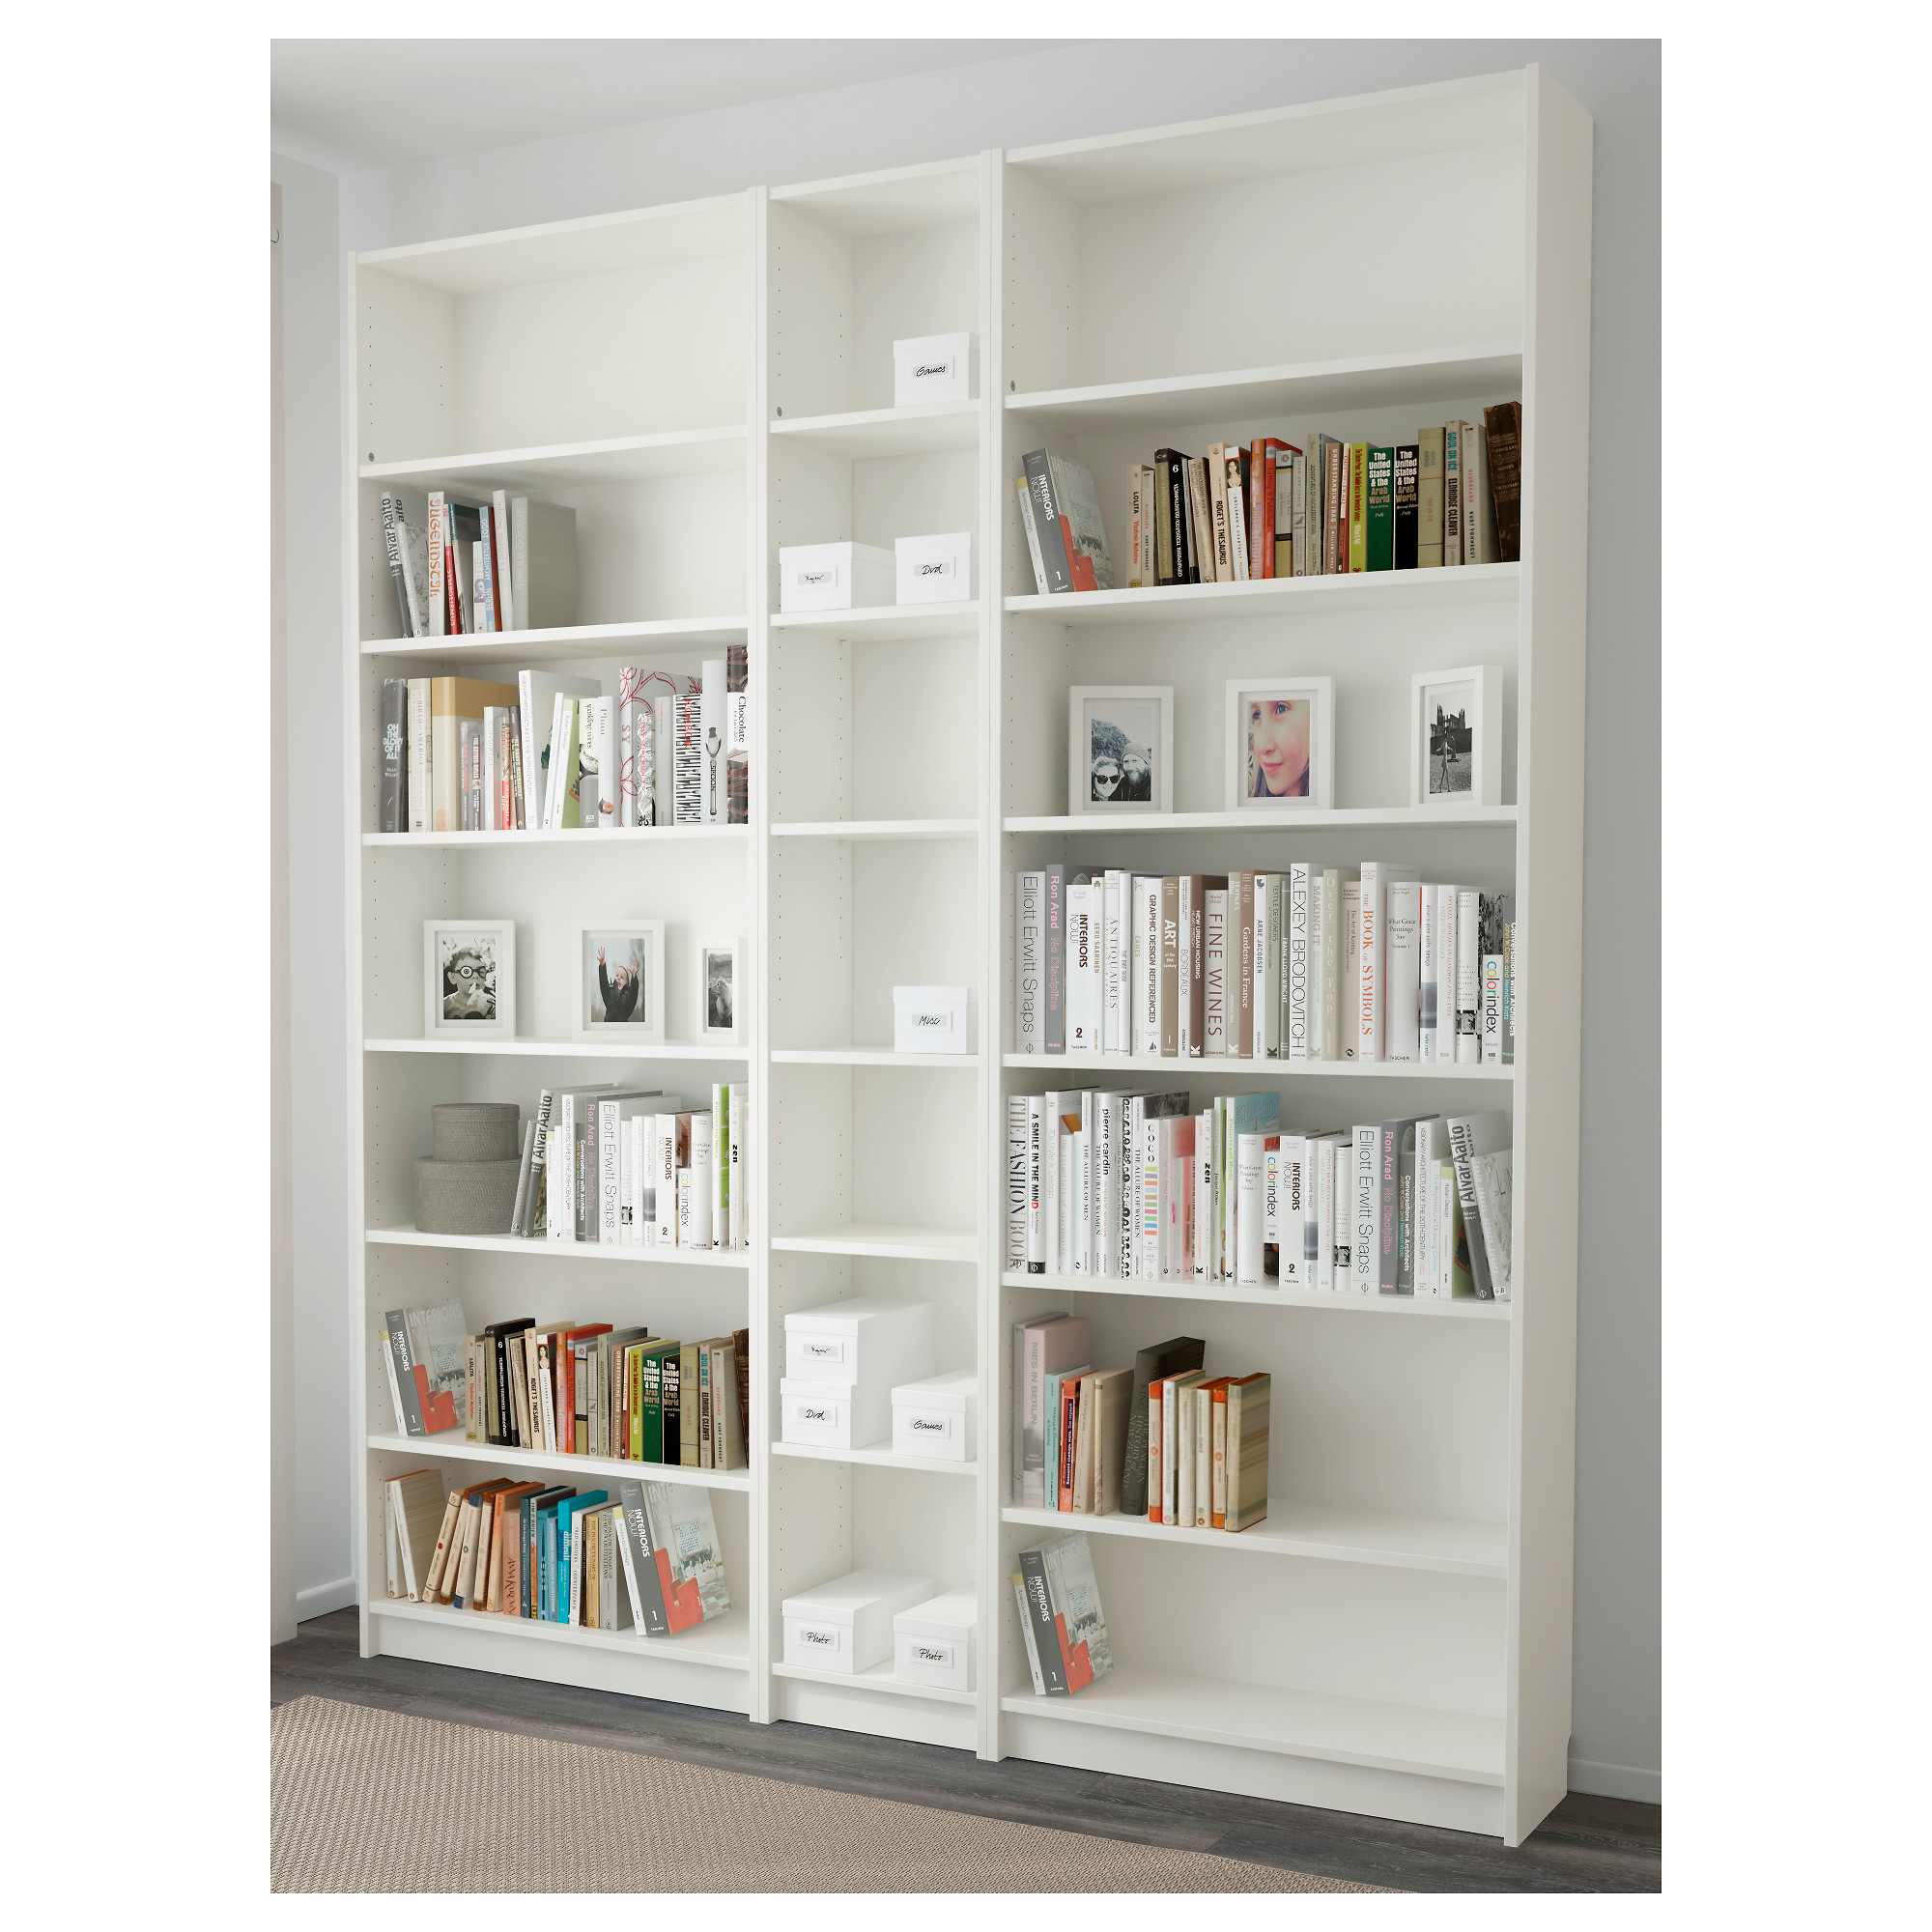 white your stained needs gb space products bookcase to oak between low long en ikea furniture according billy storage shelves veneer adapt bookcases adjustable